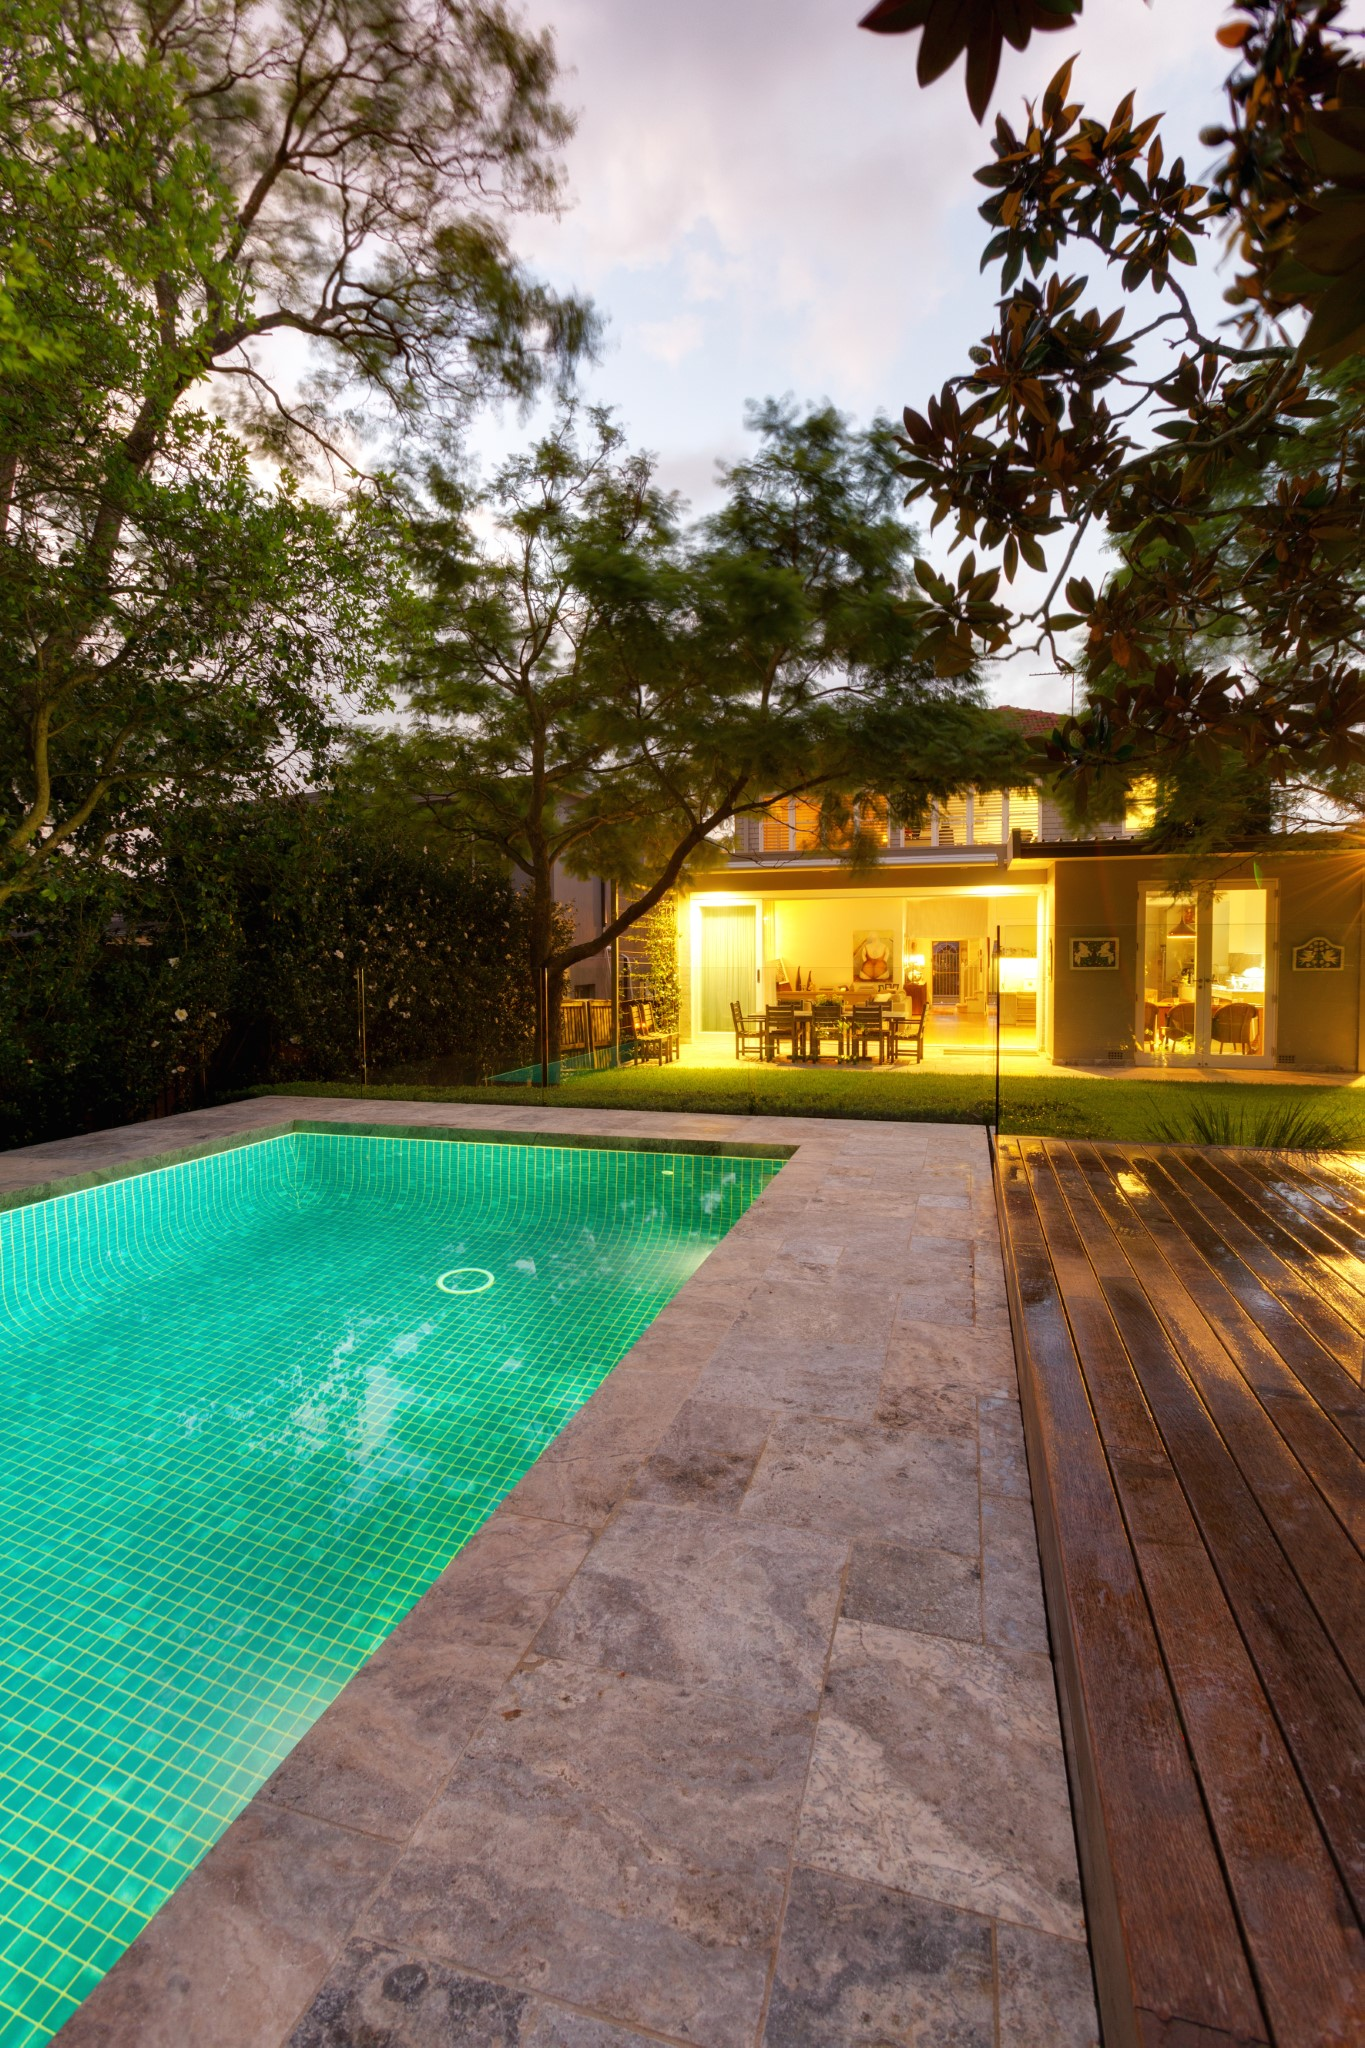 Lap pool and cozy house with turning lights on